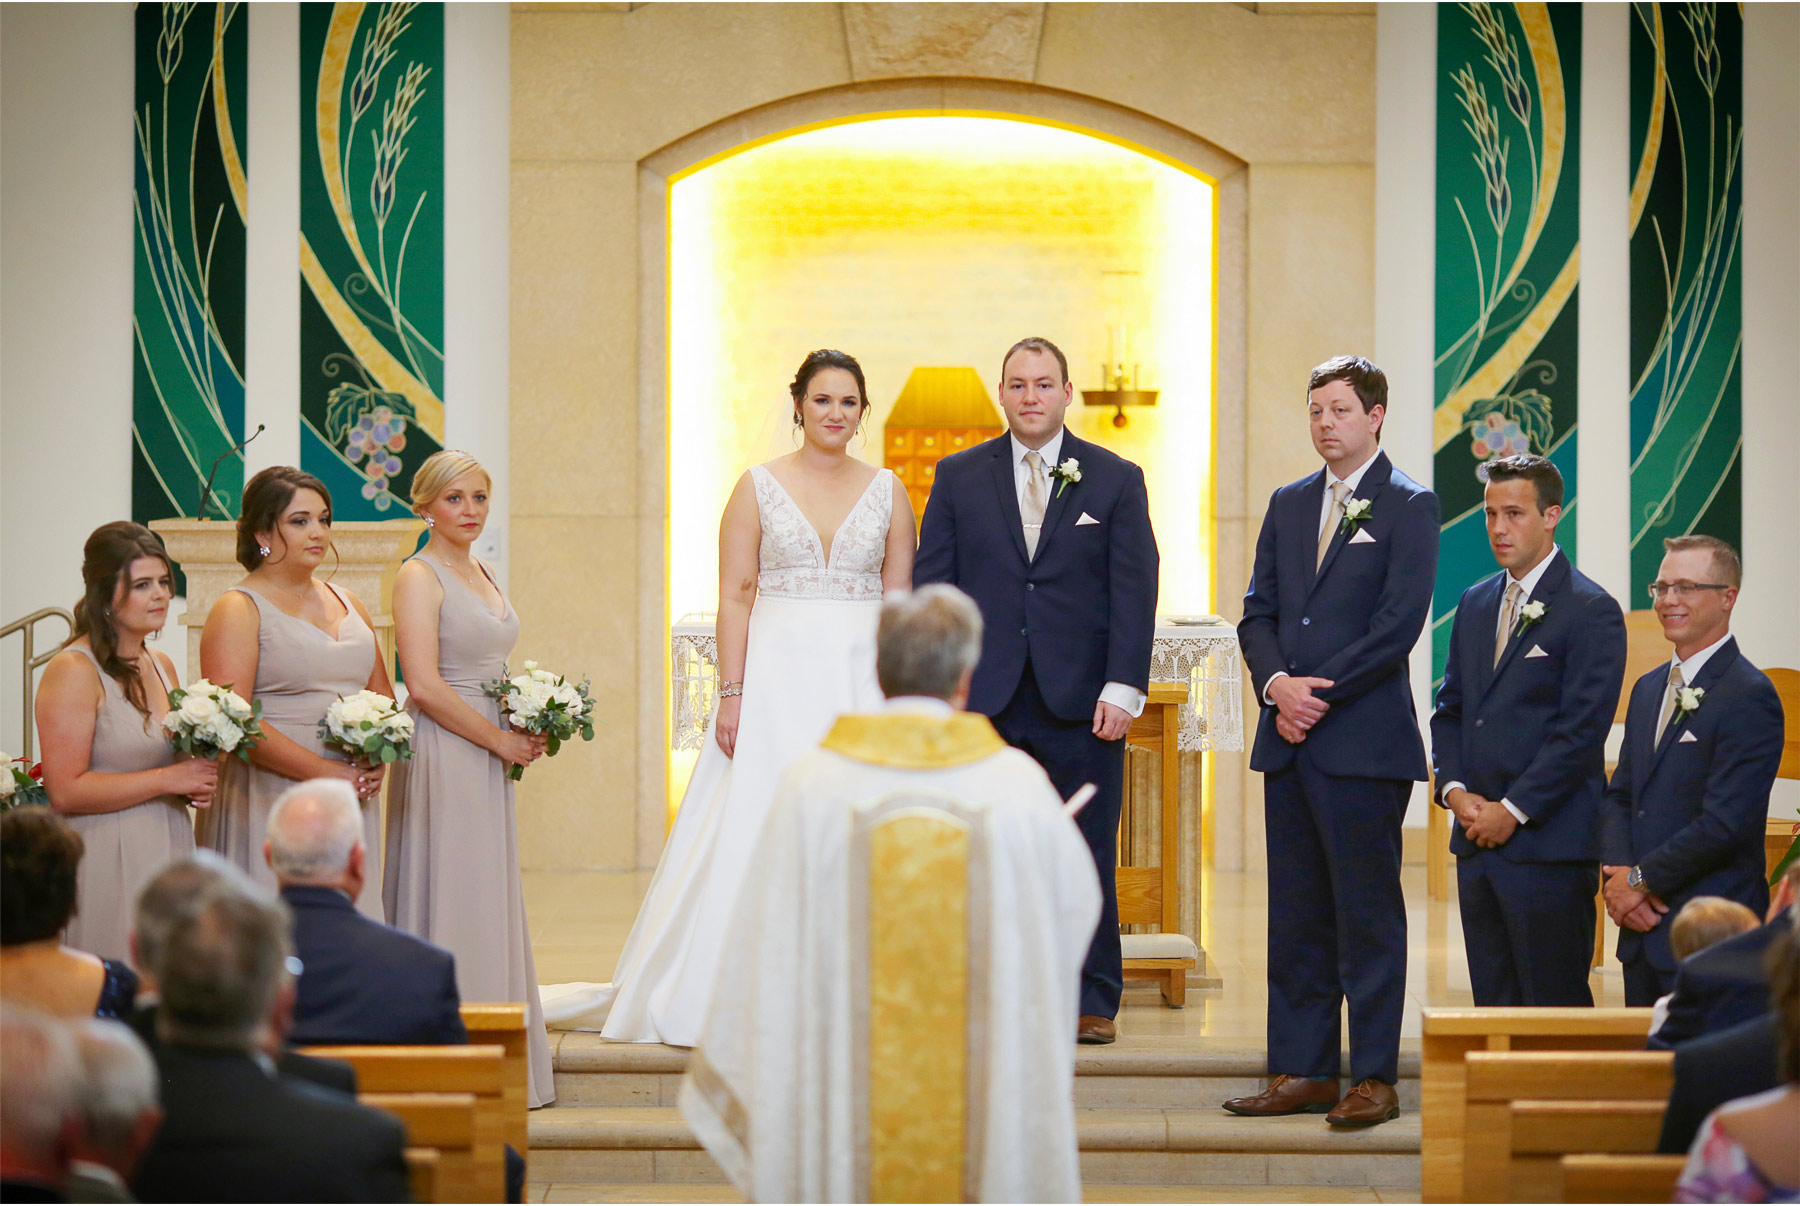 12-Vick-Photography-Wedding-Minneapolis-Minnesota-Our-Lady-of-Grace-Catholic-Church-Ceremony-Erin-and-David.jpg